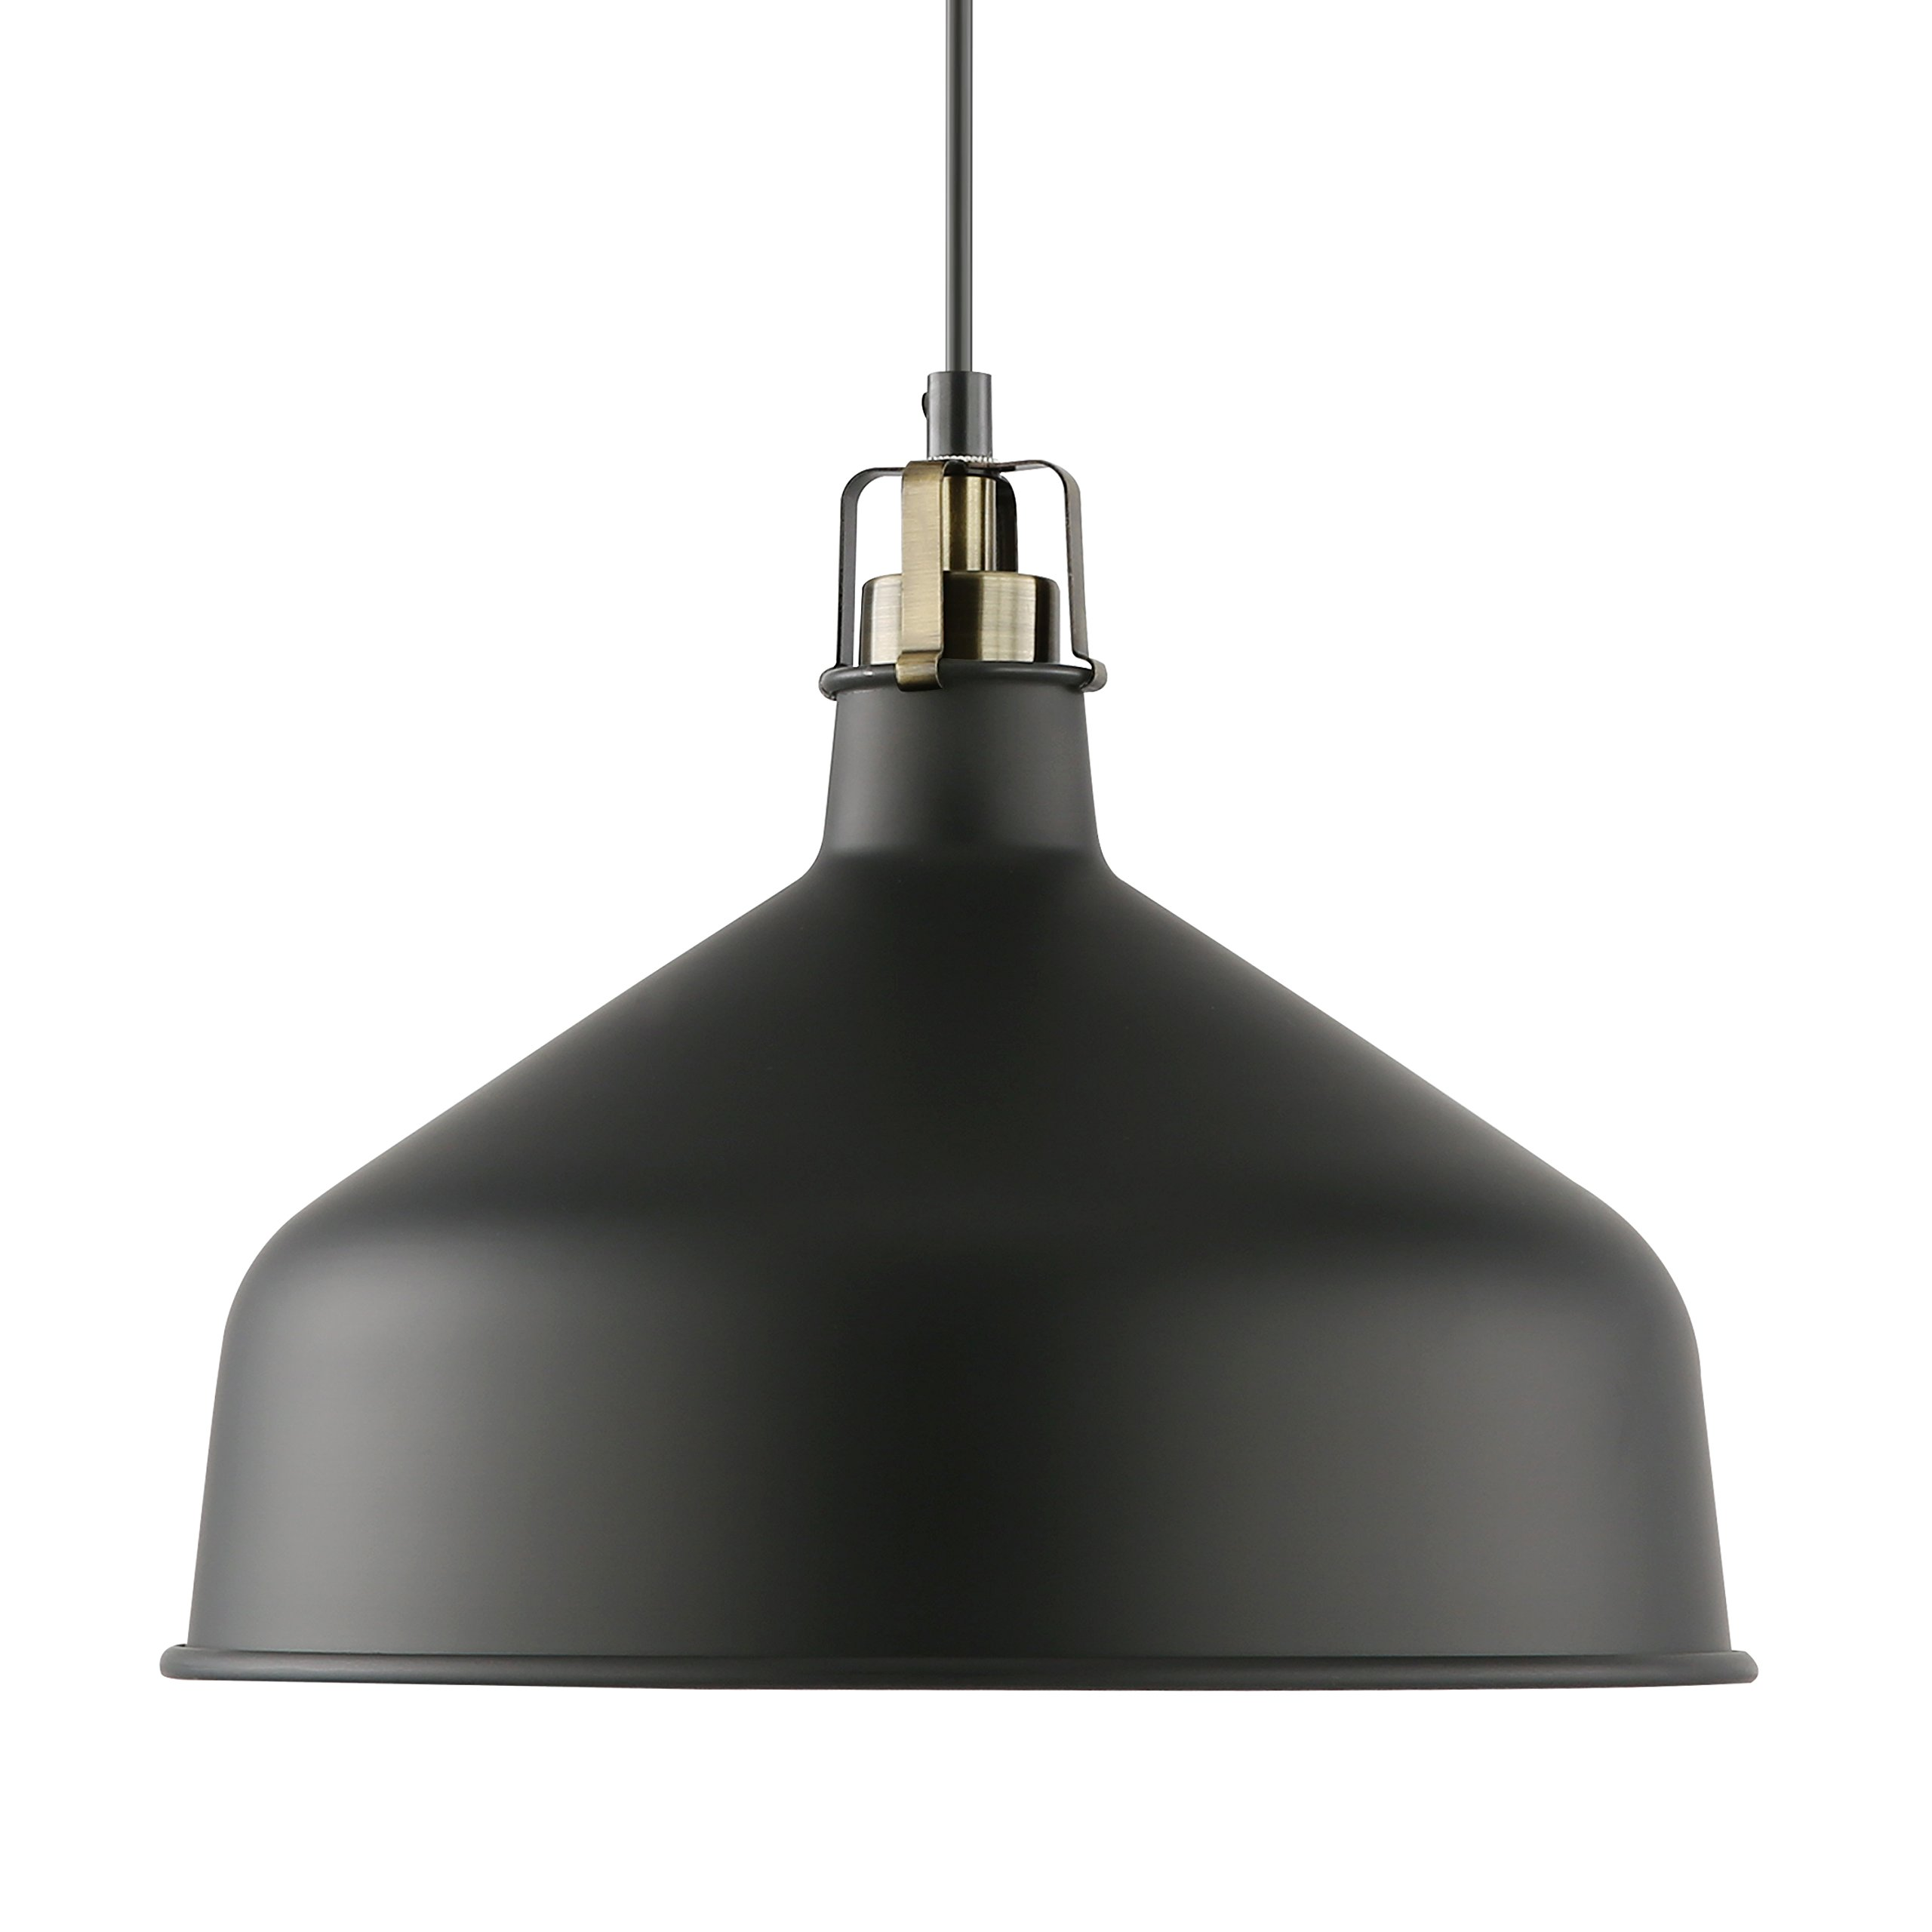 Light Society Banbury Pendant Light, Matte Black Shade with Brushed Brass Finish, Modern Industrial Farmhouse Lighting Fixture (LS-C167-BLK)